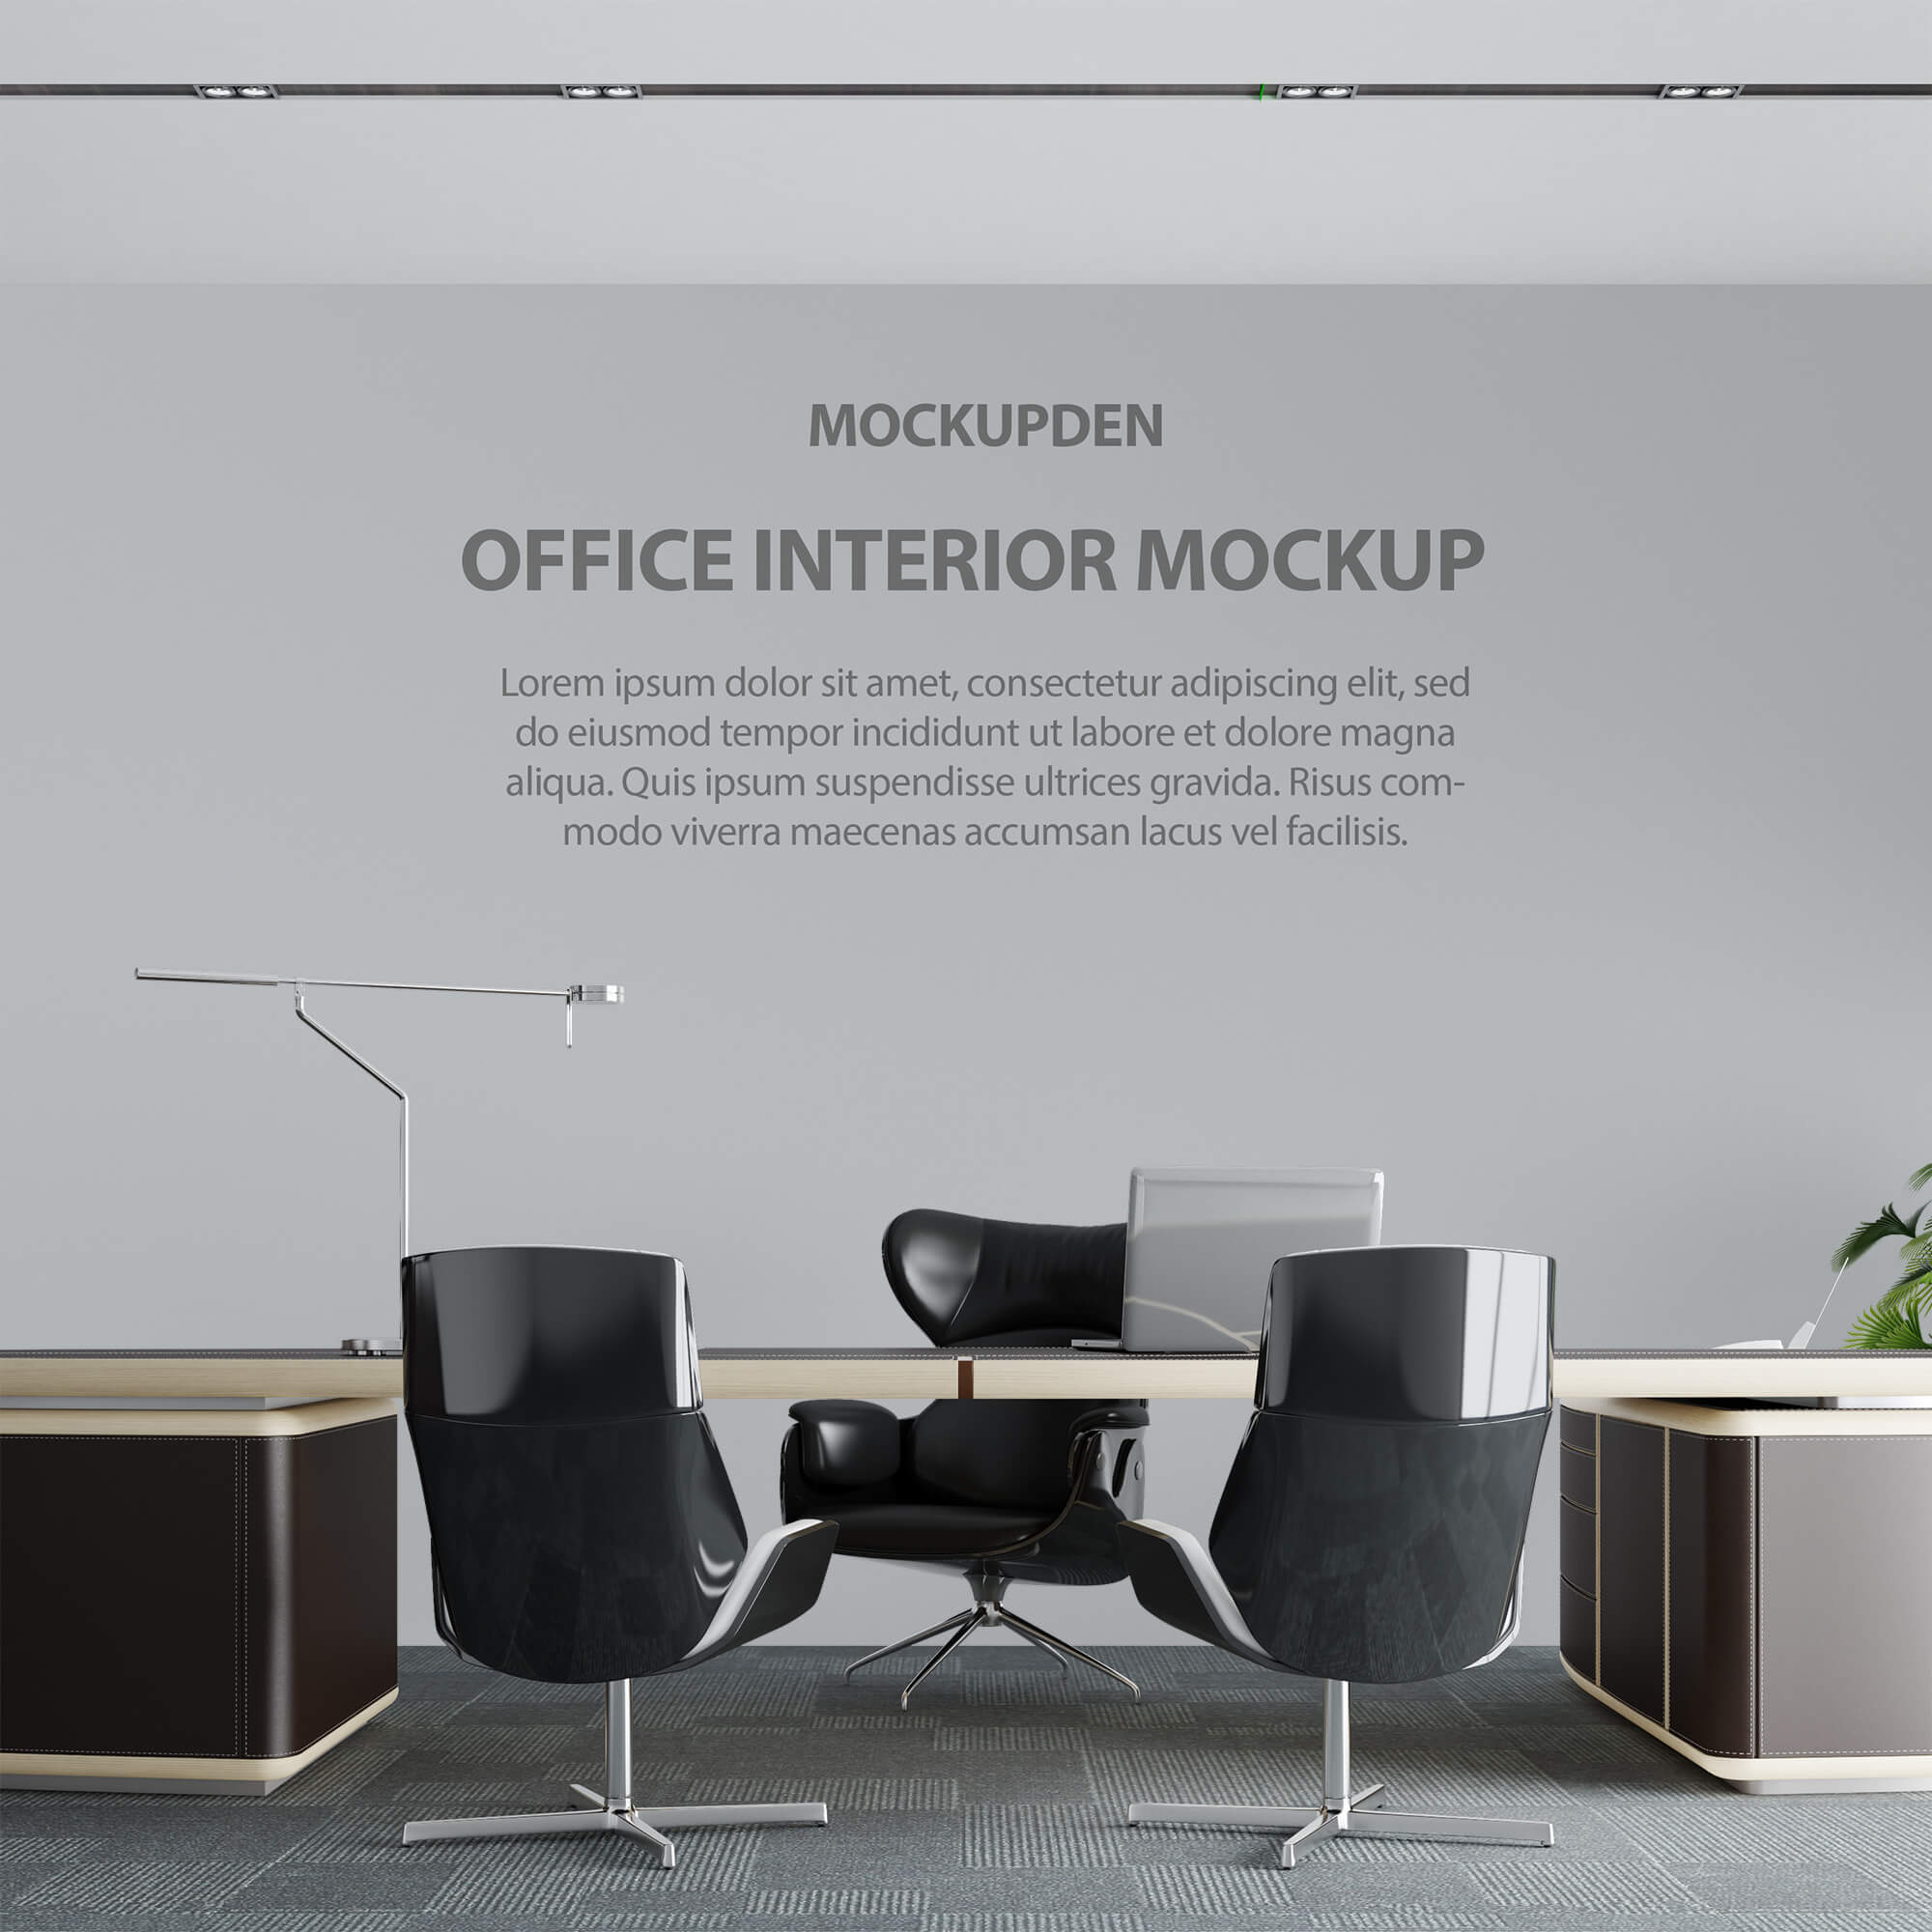 Free Office interior Mockup PSD Template